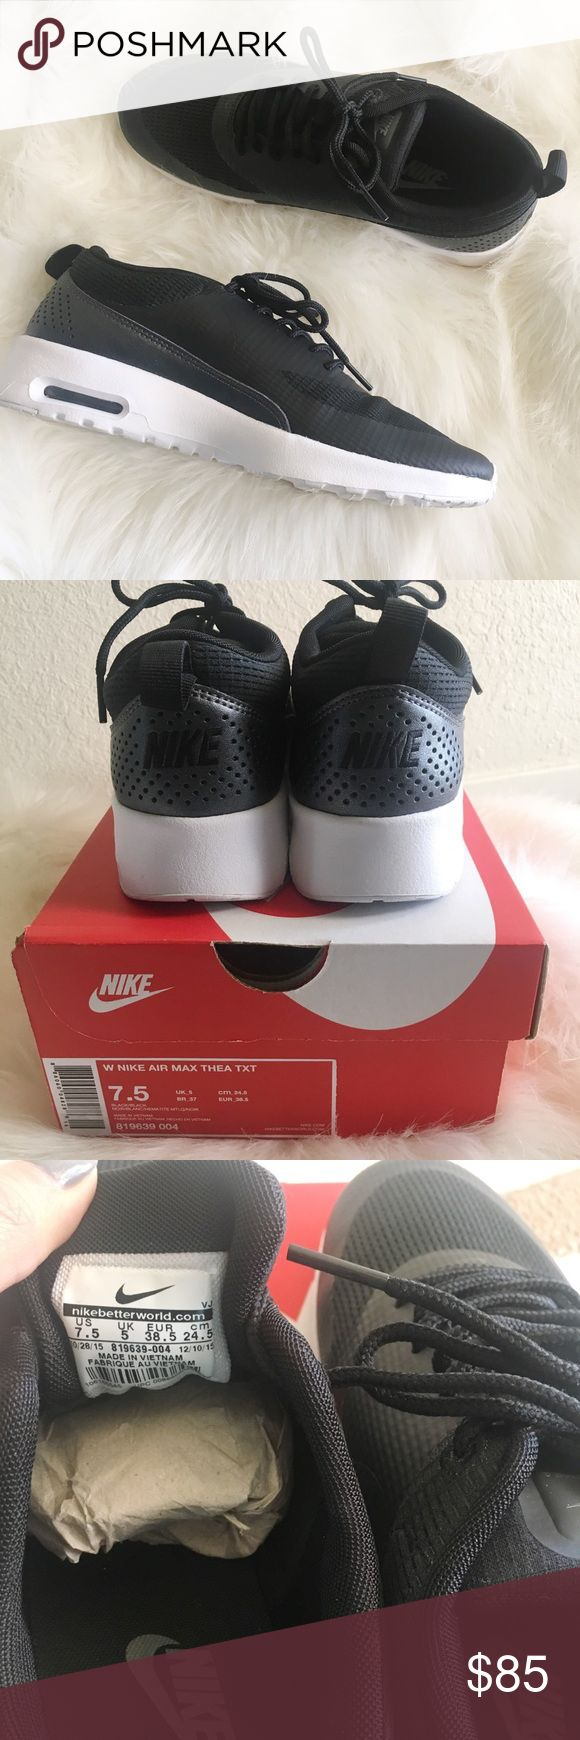 Nike Air Max Thea Textile Sneaker Wore these to try on outside for literally one minute. Brand new with box. Black. Size 7.5. Purchased on urban outfitters, but didn't like how they looked on me. Price firm- I'd like to get the money I paid back but if not, I'll just return for store credit. Nike Shoes Sneakers